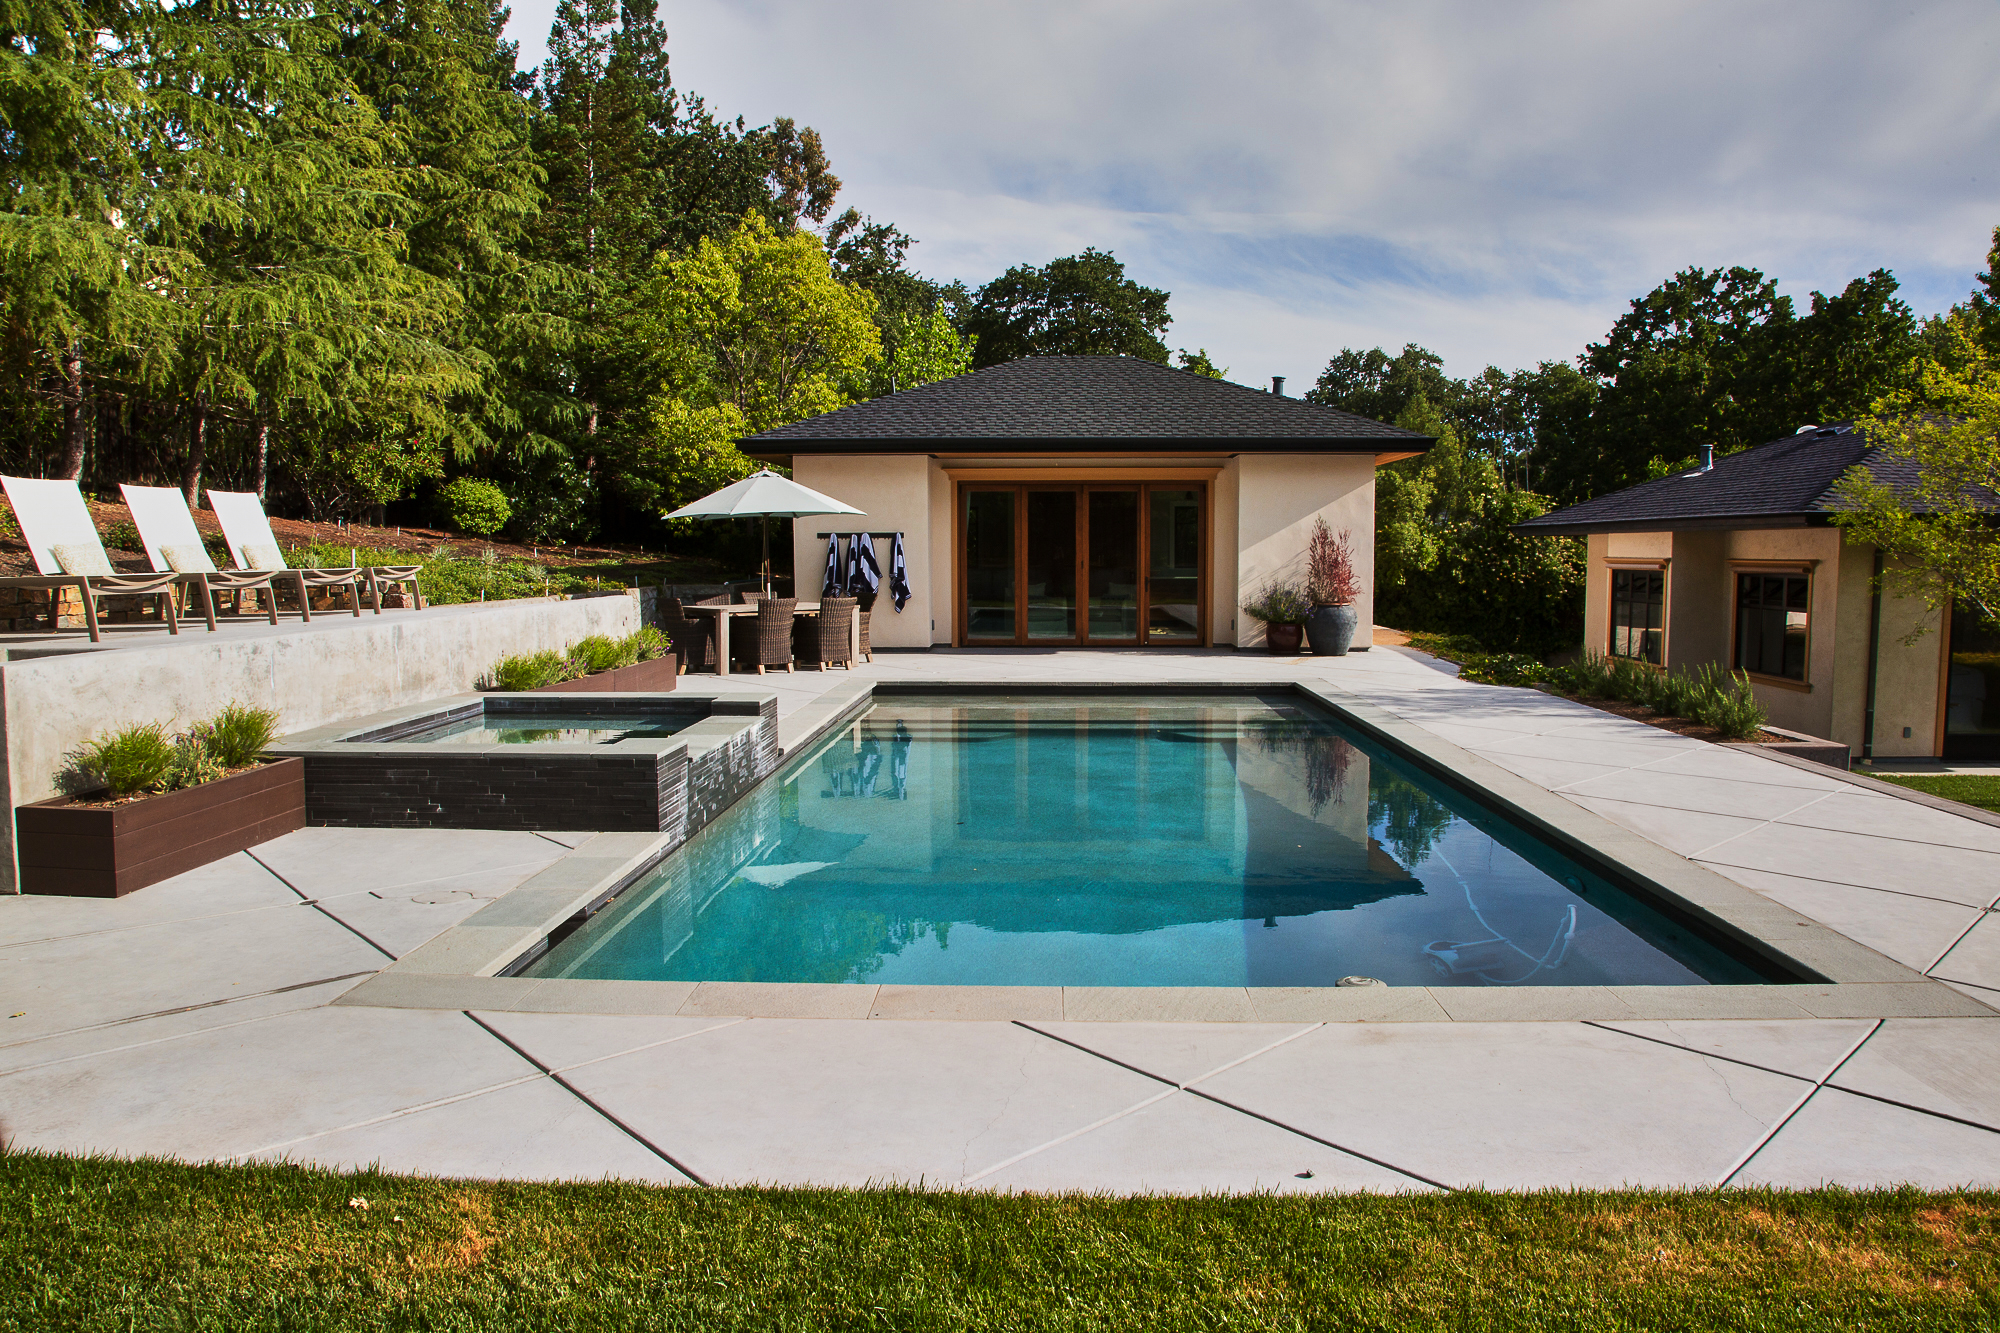 POOL - Whether building a new pool or remodeling an existing, we have the expertise and team to handle any size project.